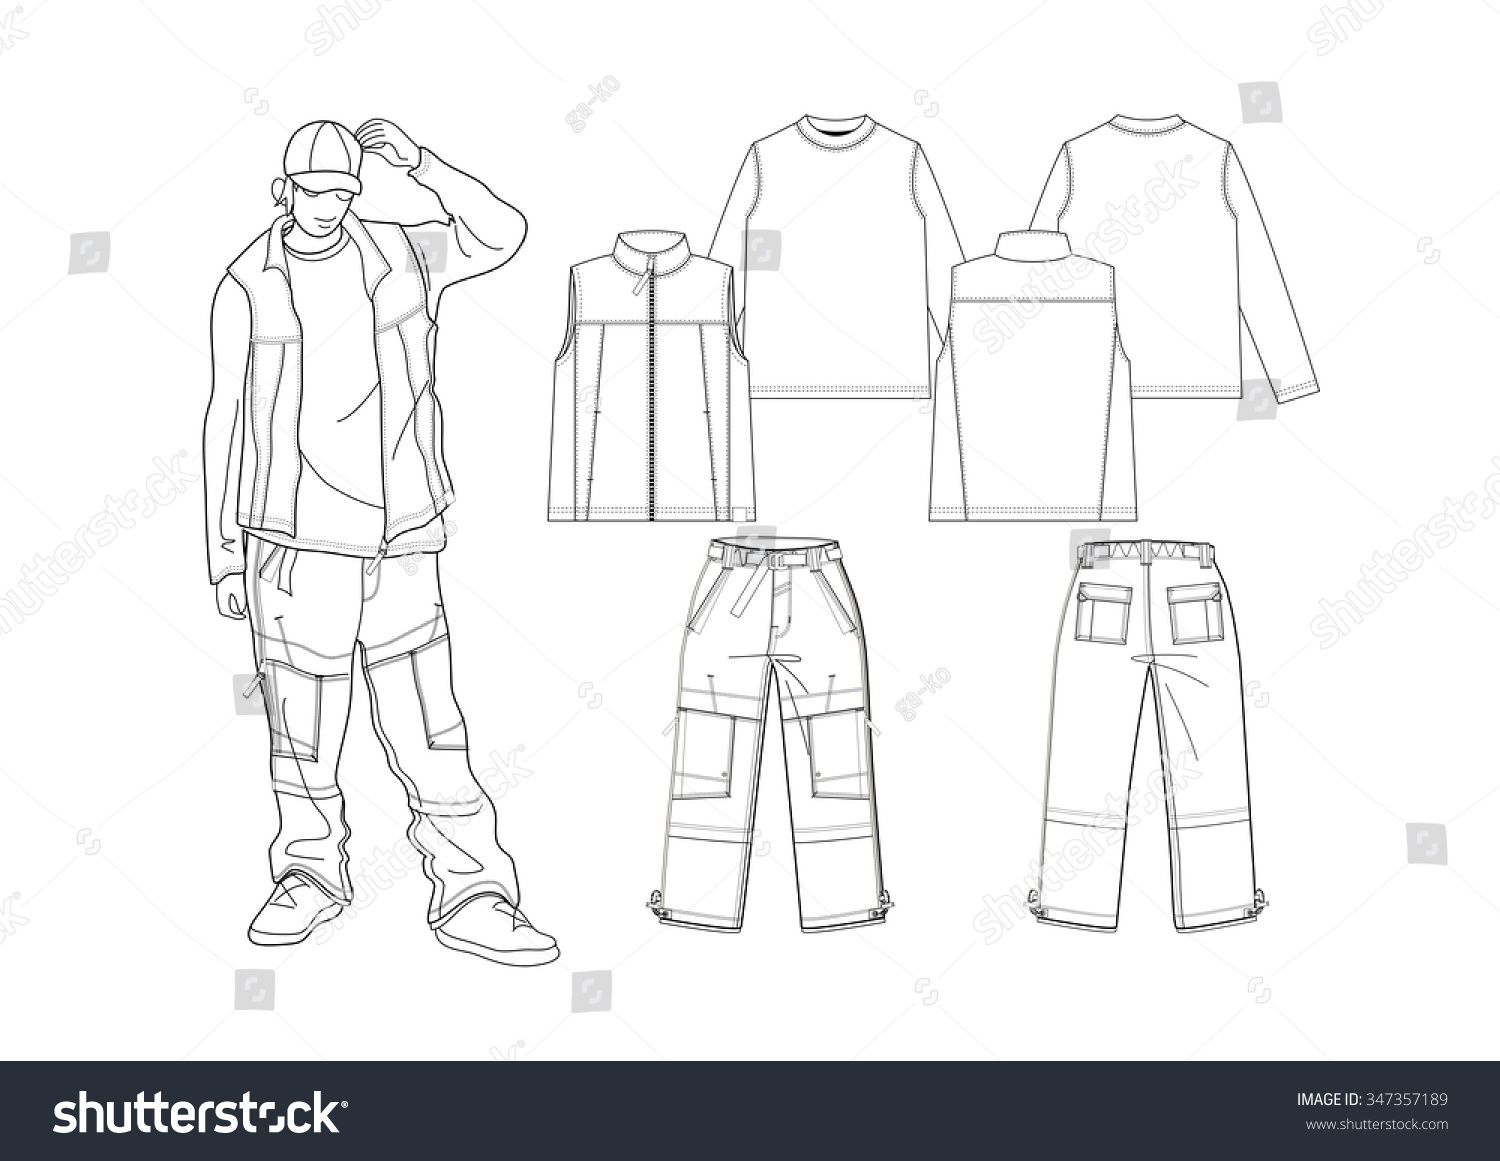 T Shirt Design Line Art : Fashion sketch tshirt pants design stock photo vector